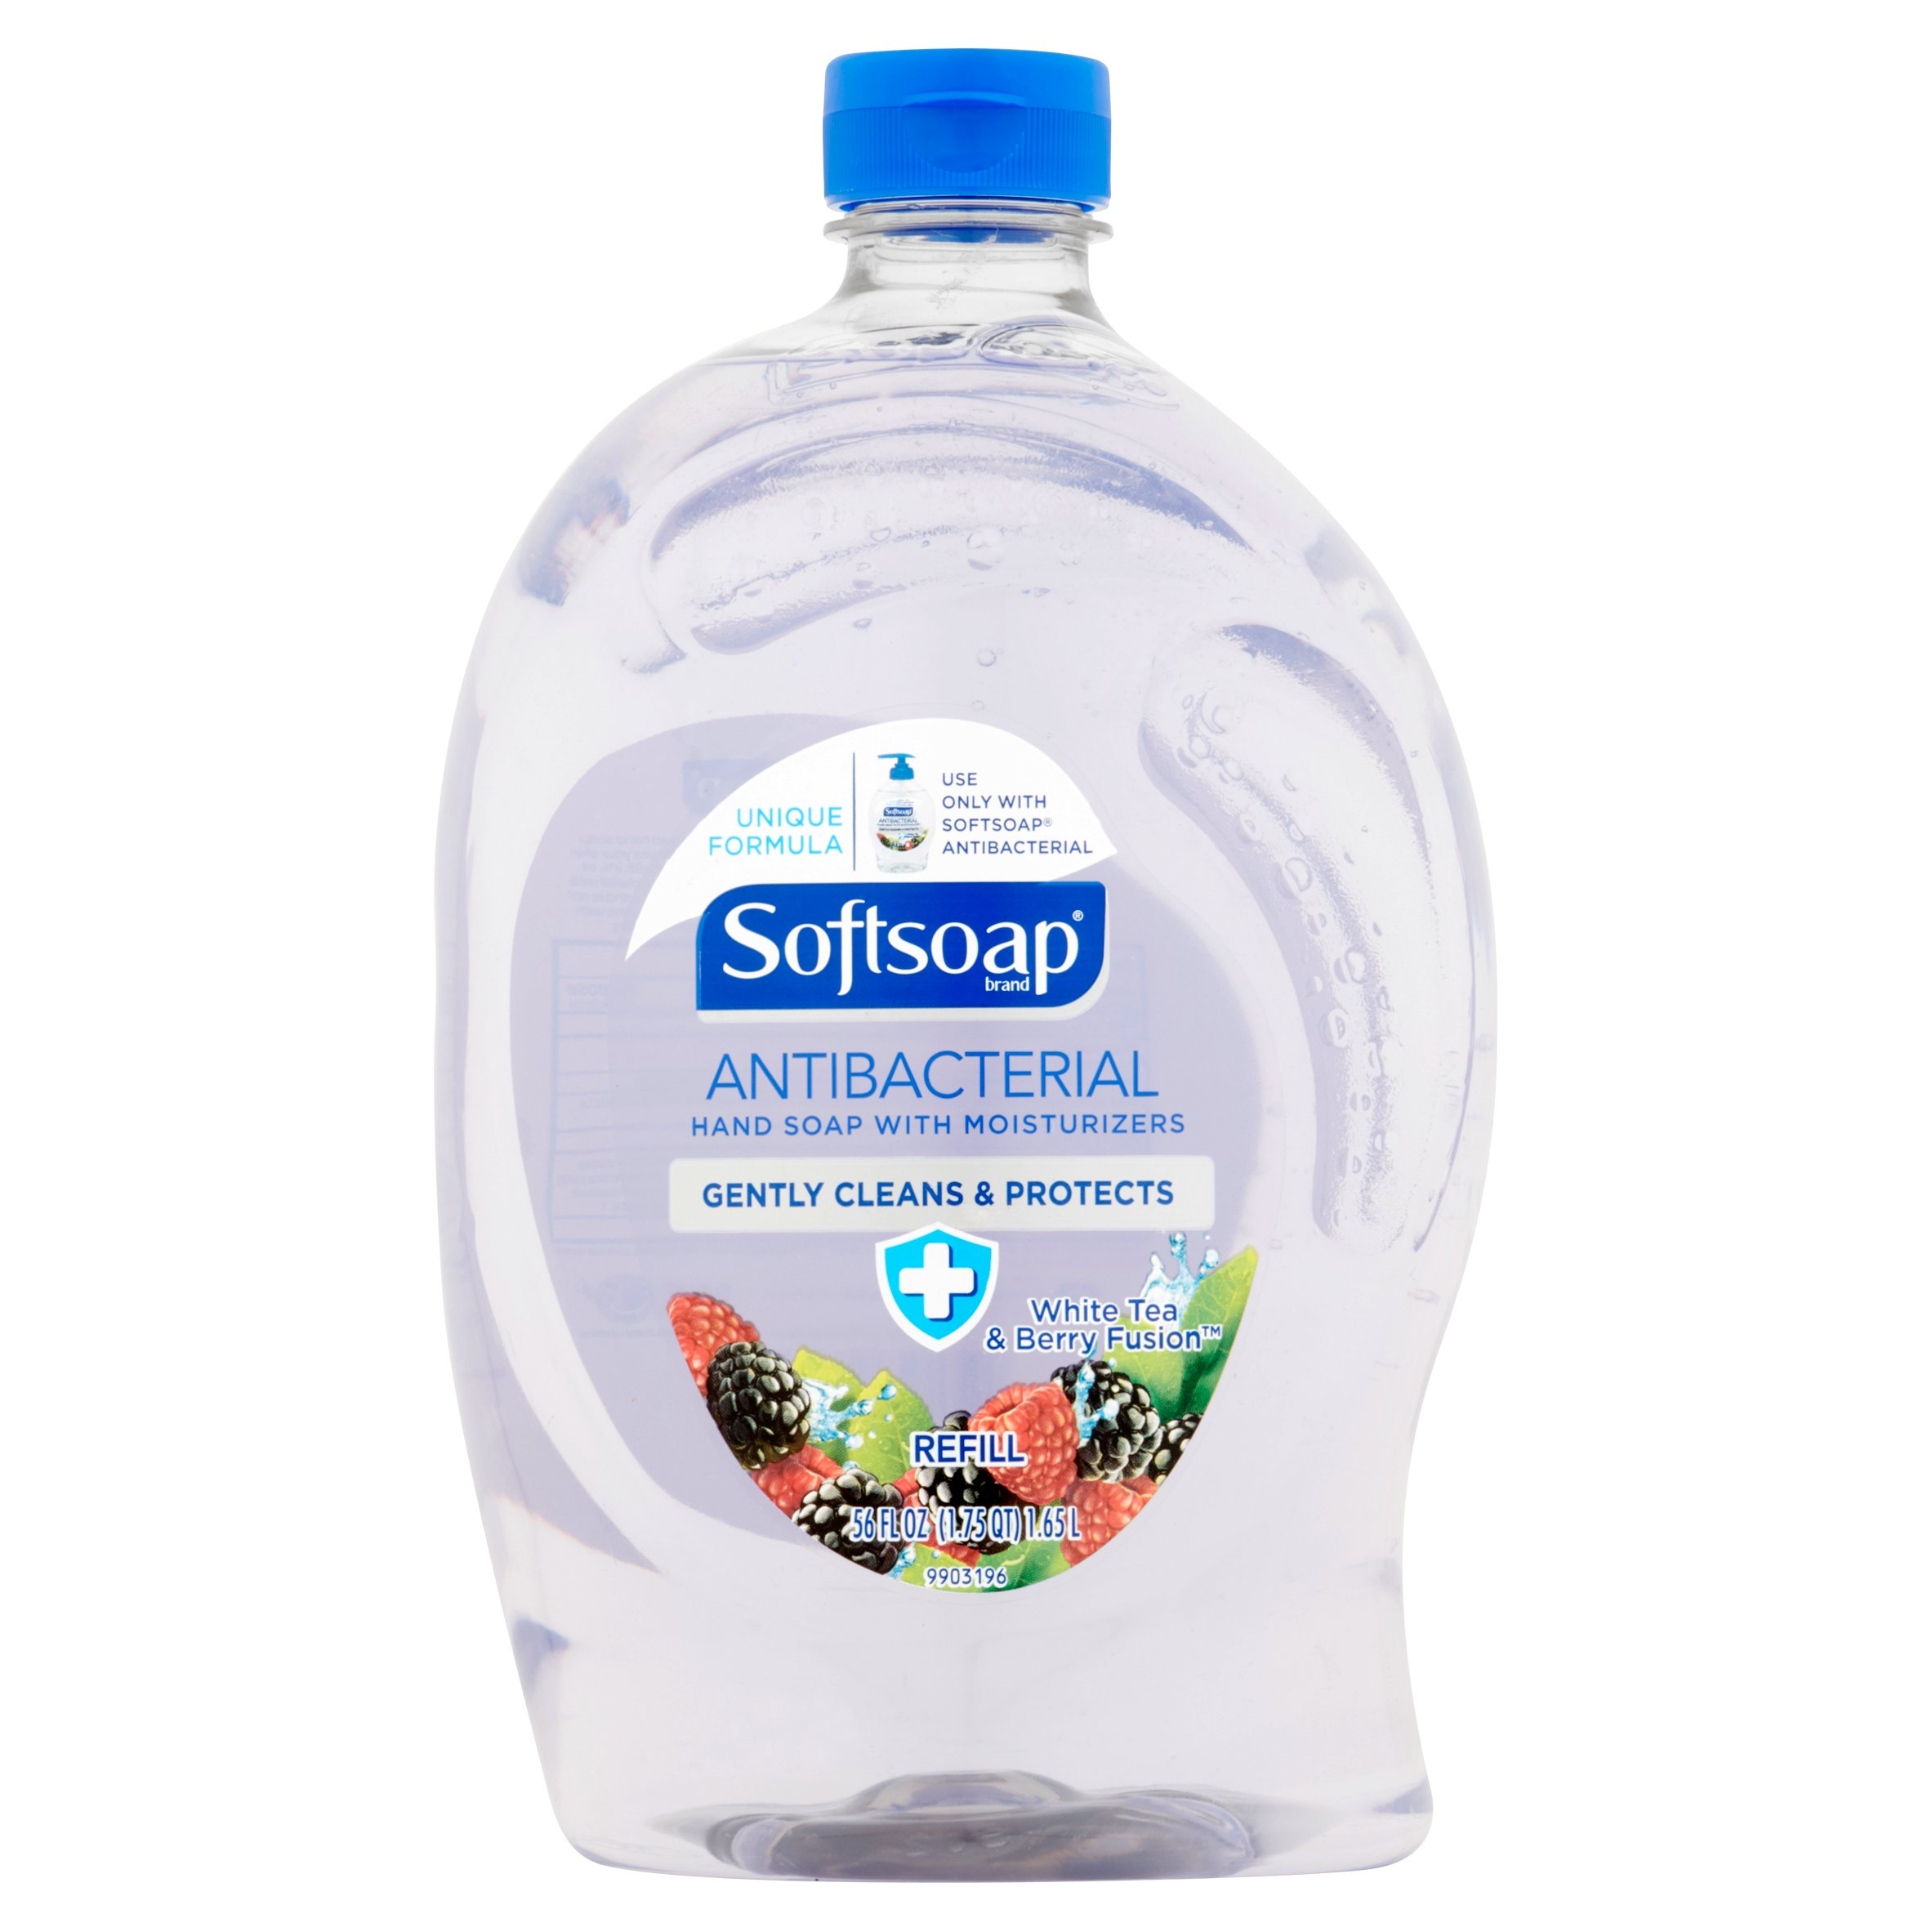 Softsoap Antibacterial Hand Soap Refill, White Tea and Berry Fusion - 56 fl oz